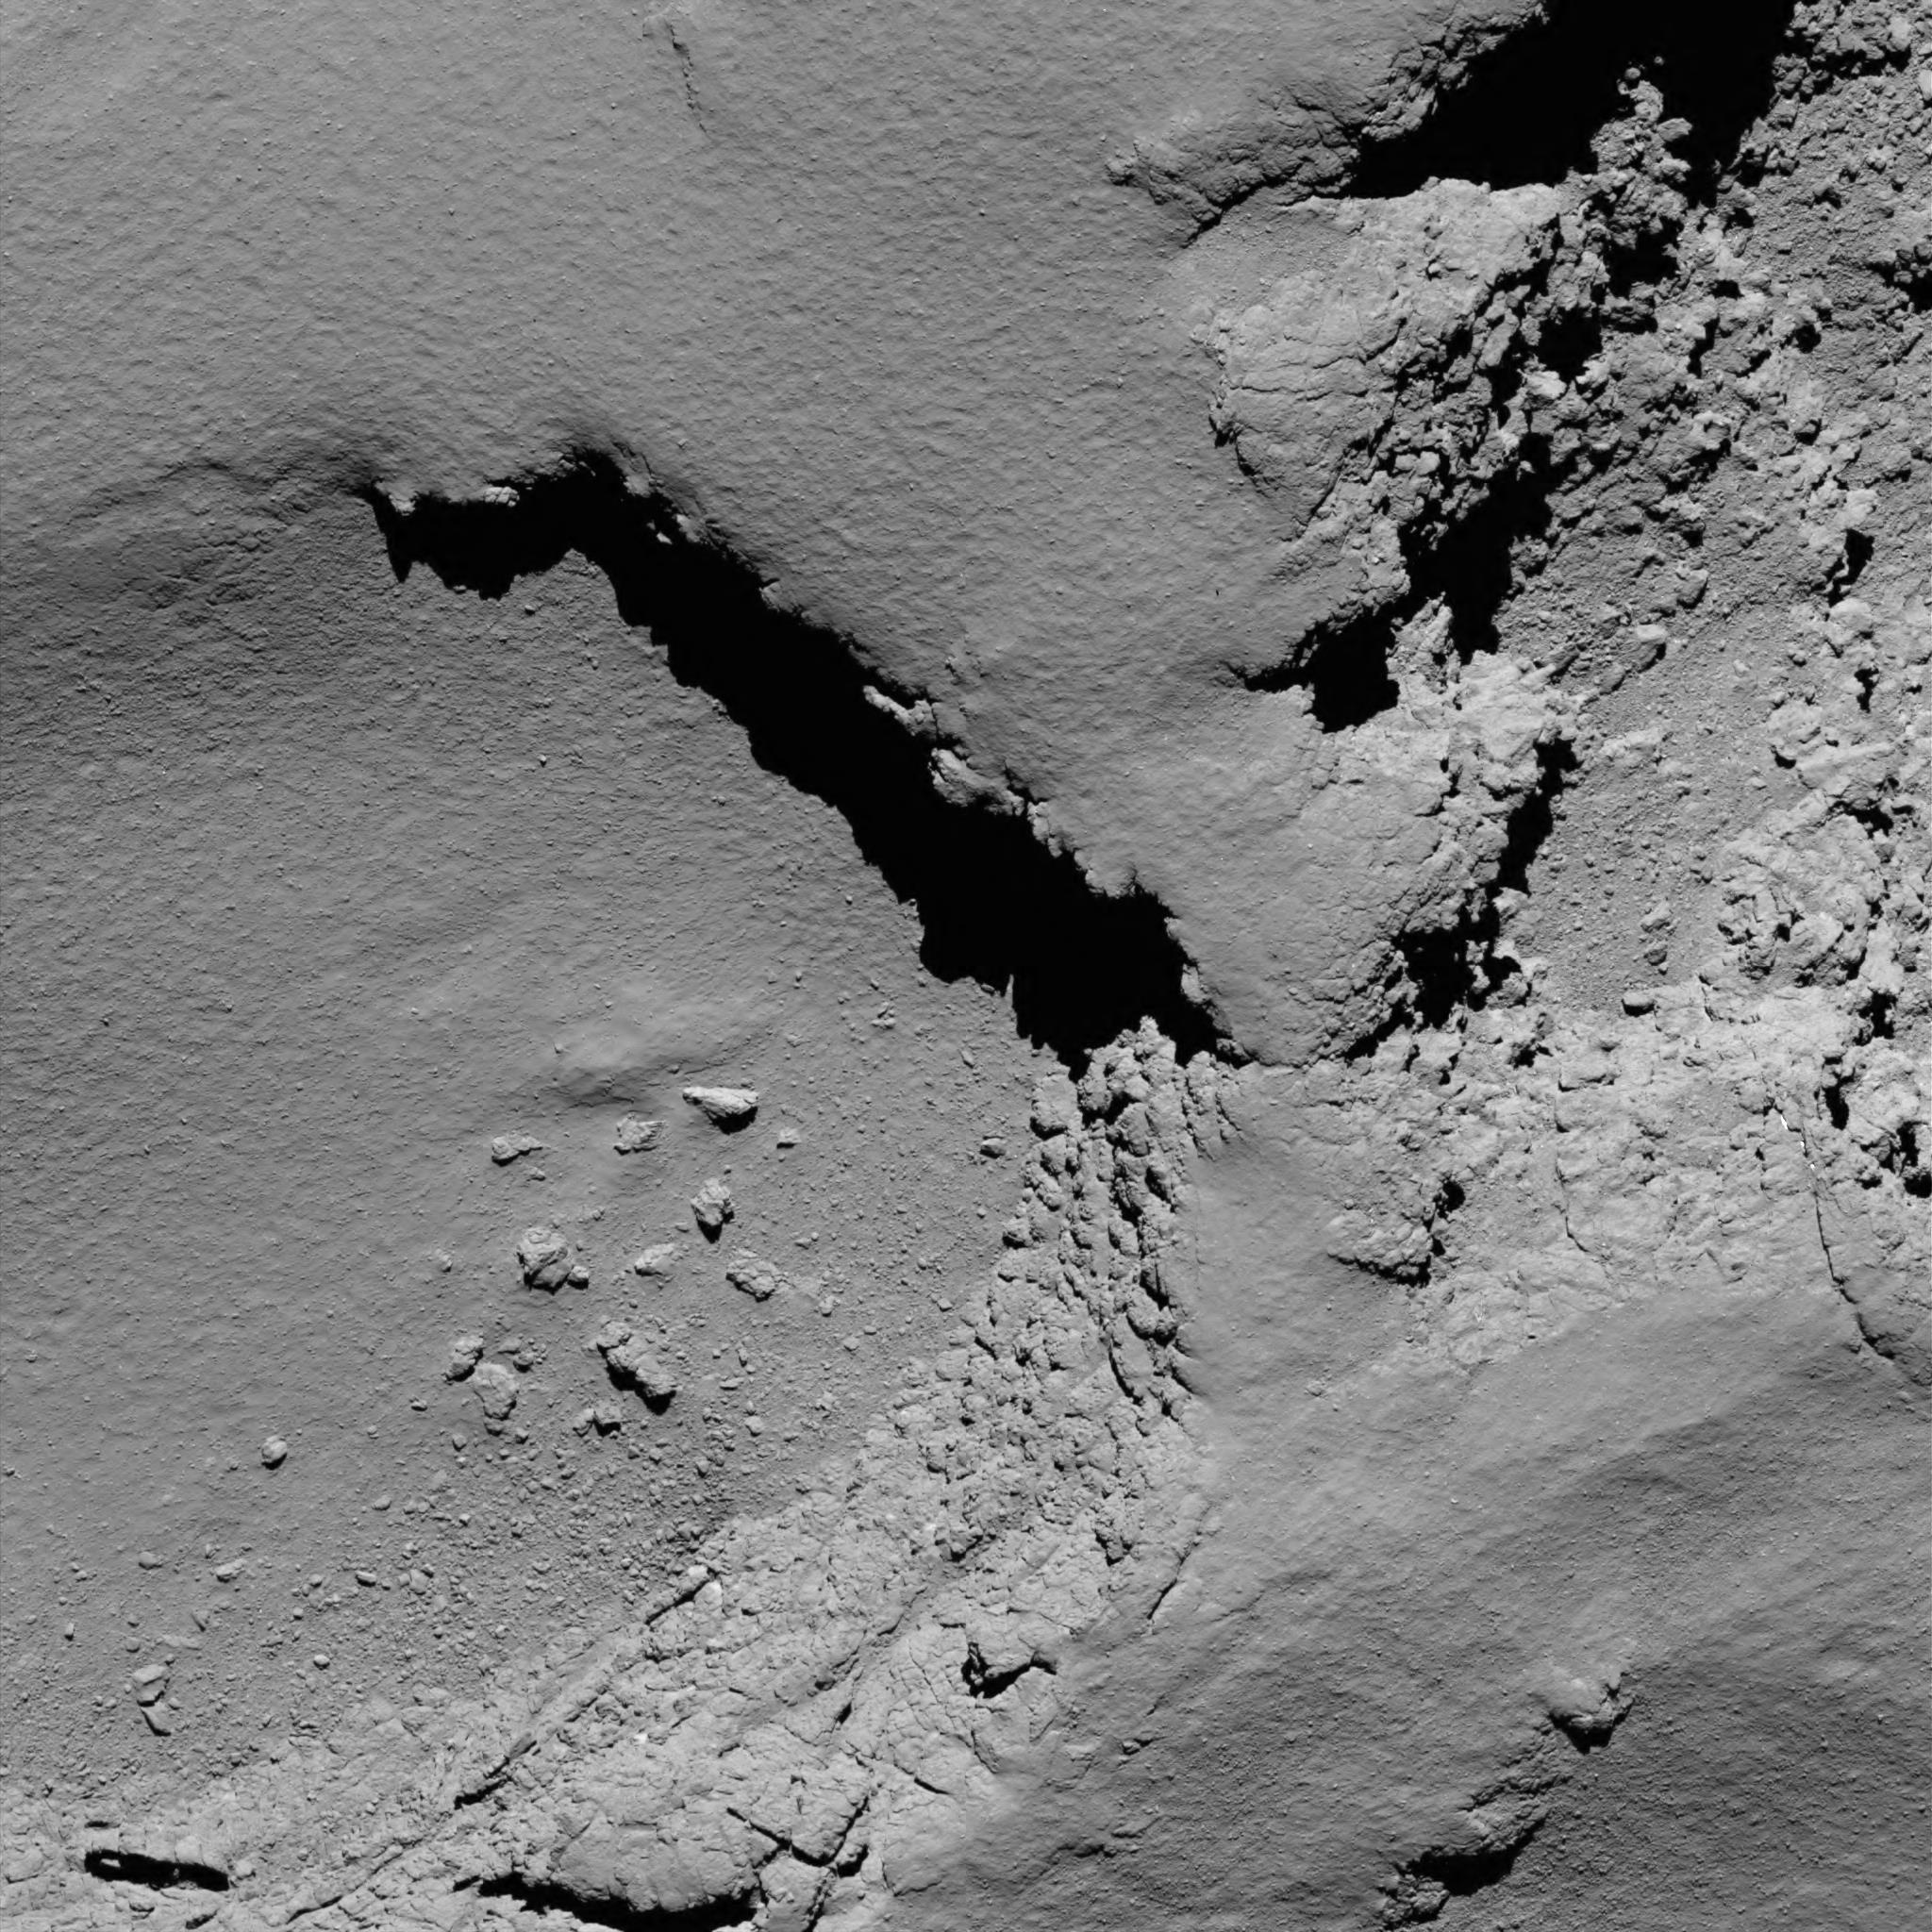 is_rosetta_atterrisage_comet_from_5.8_km_narrow-angle_camera.jpg